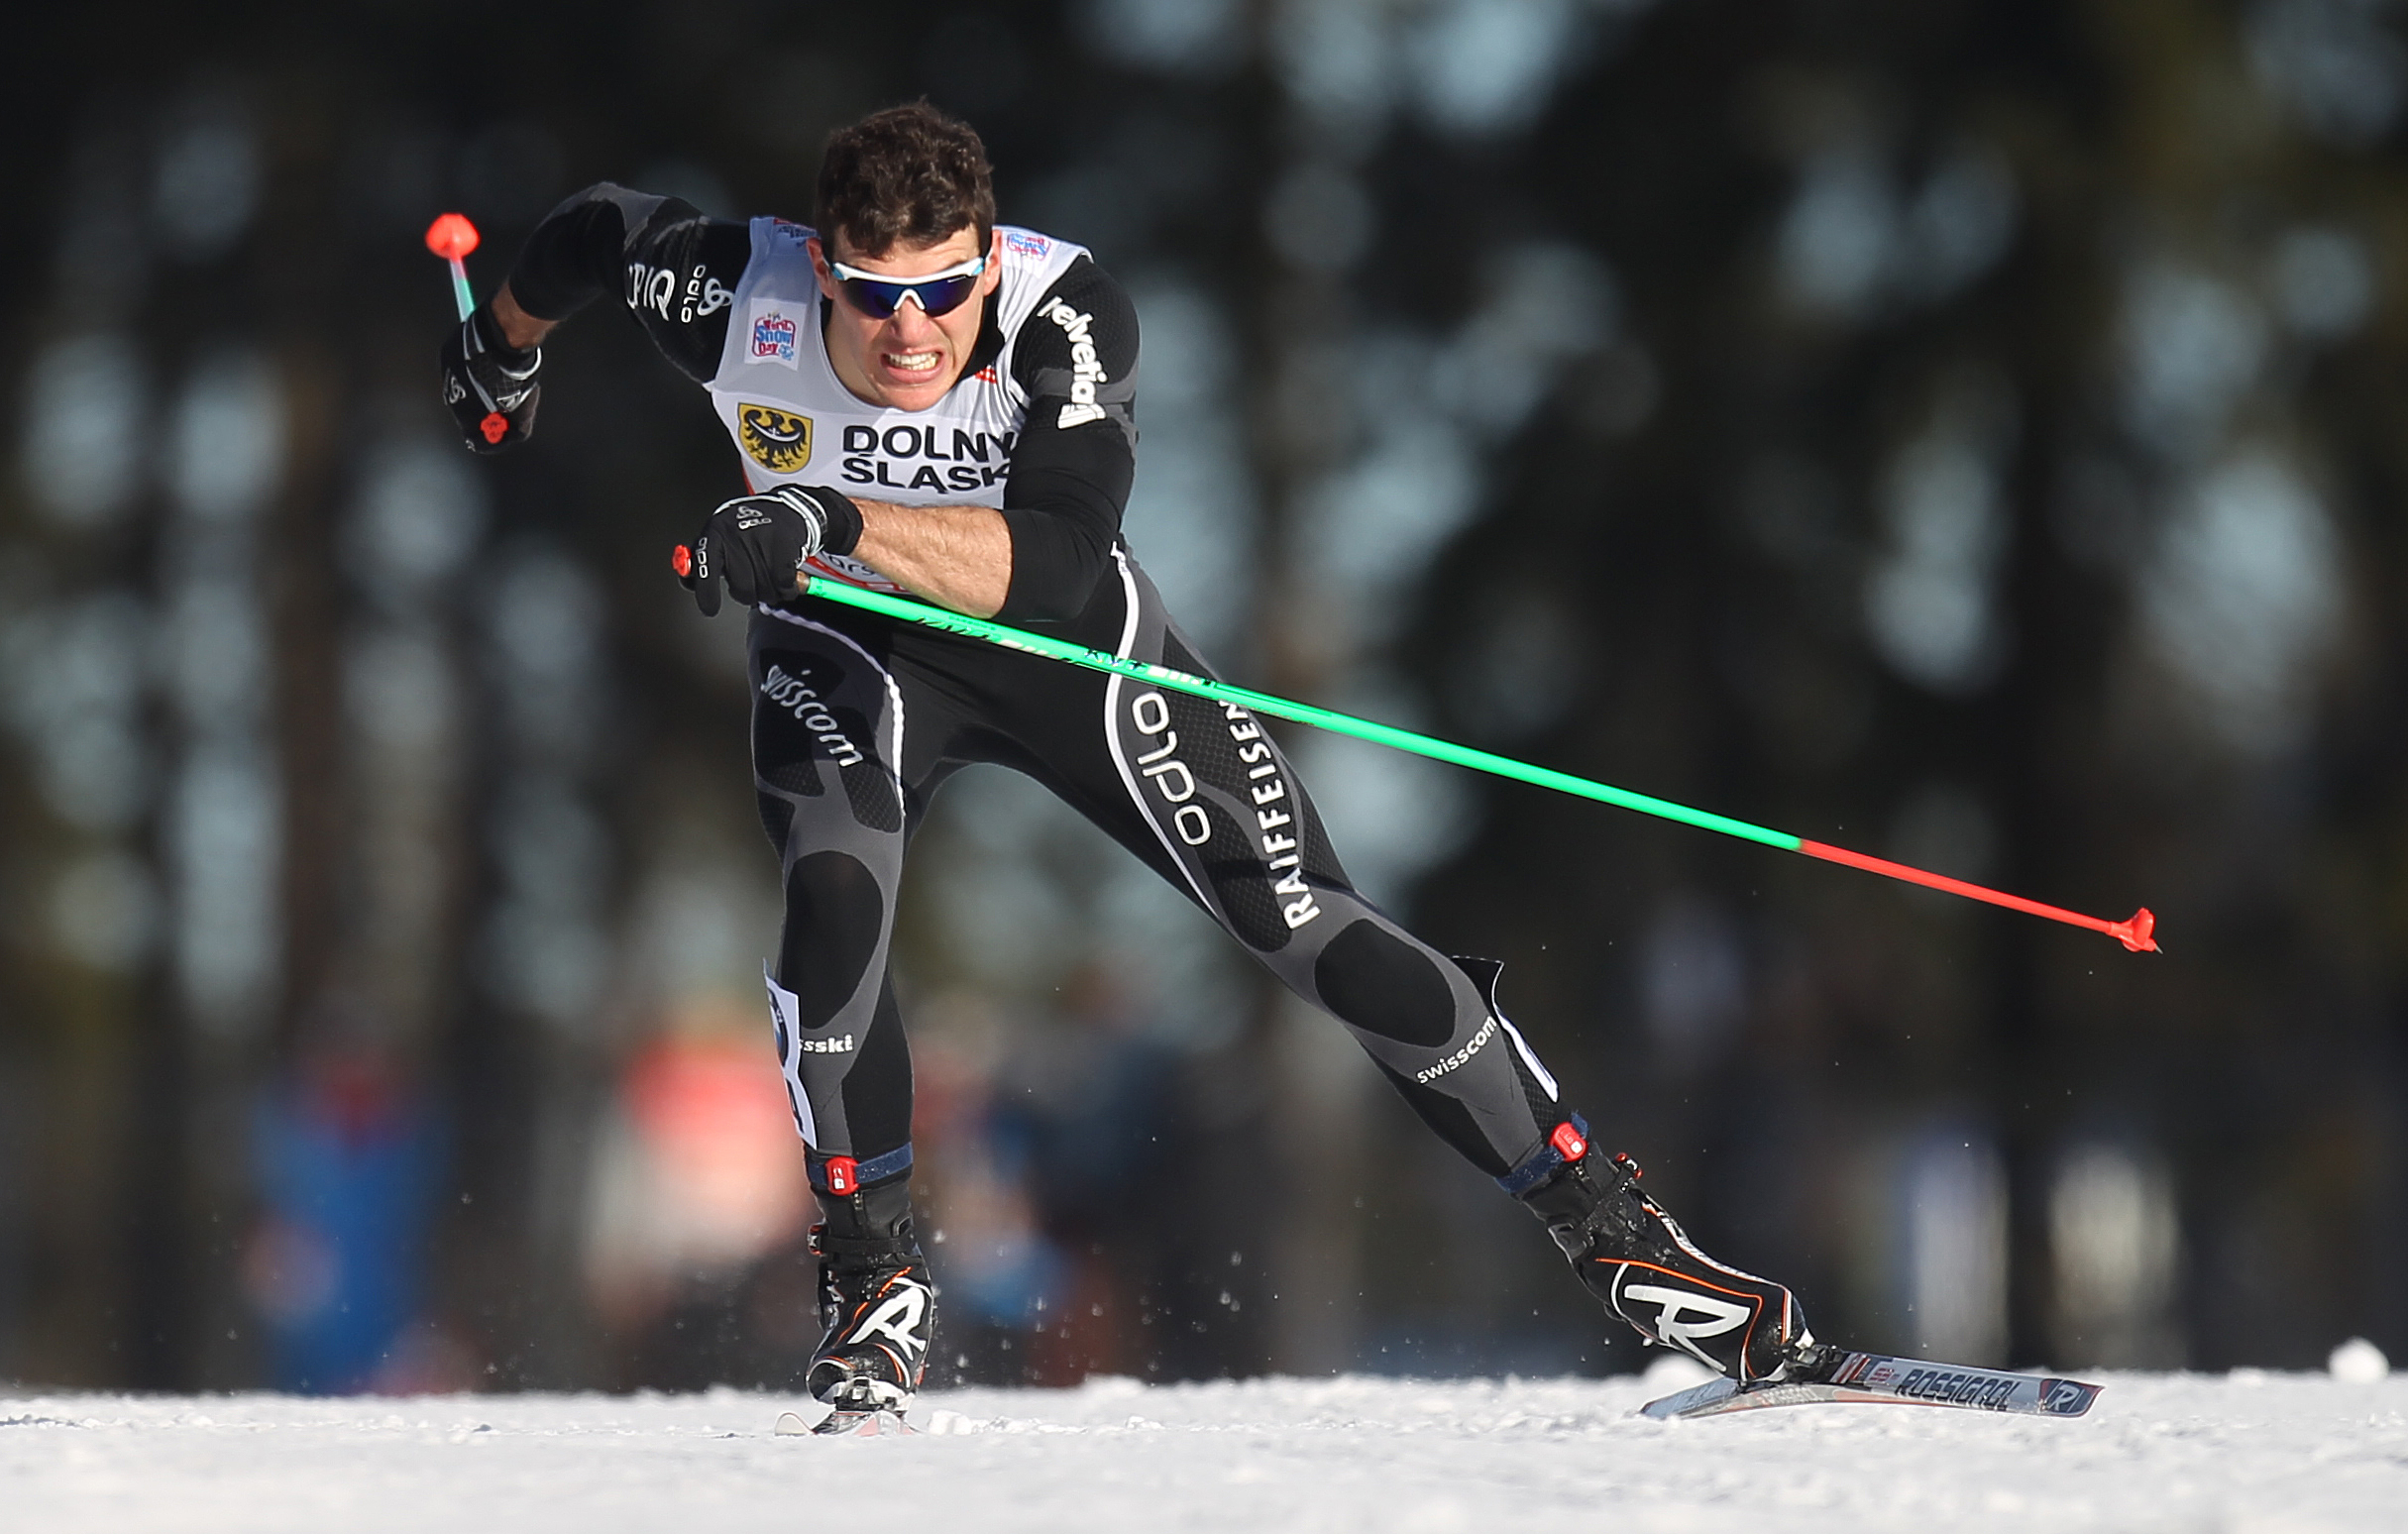 FIS world cup cross-country, individual sprint, Szklarska Poreba(POL)